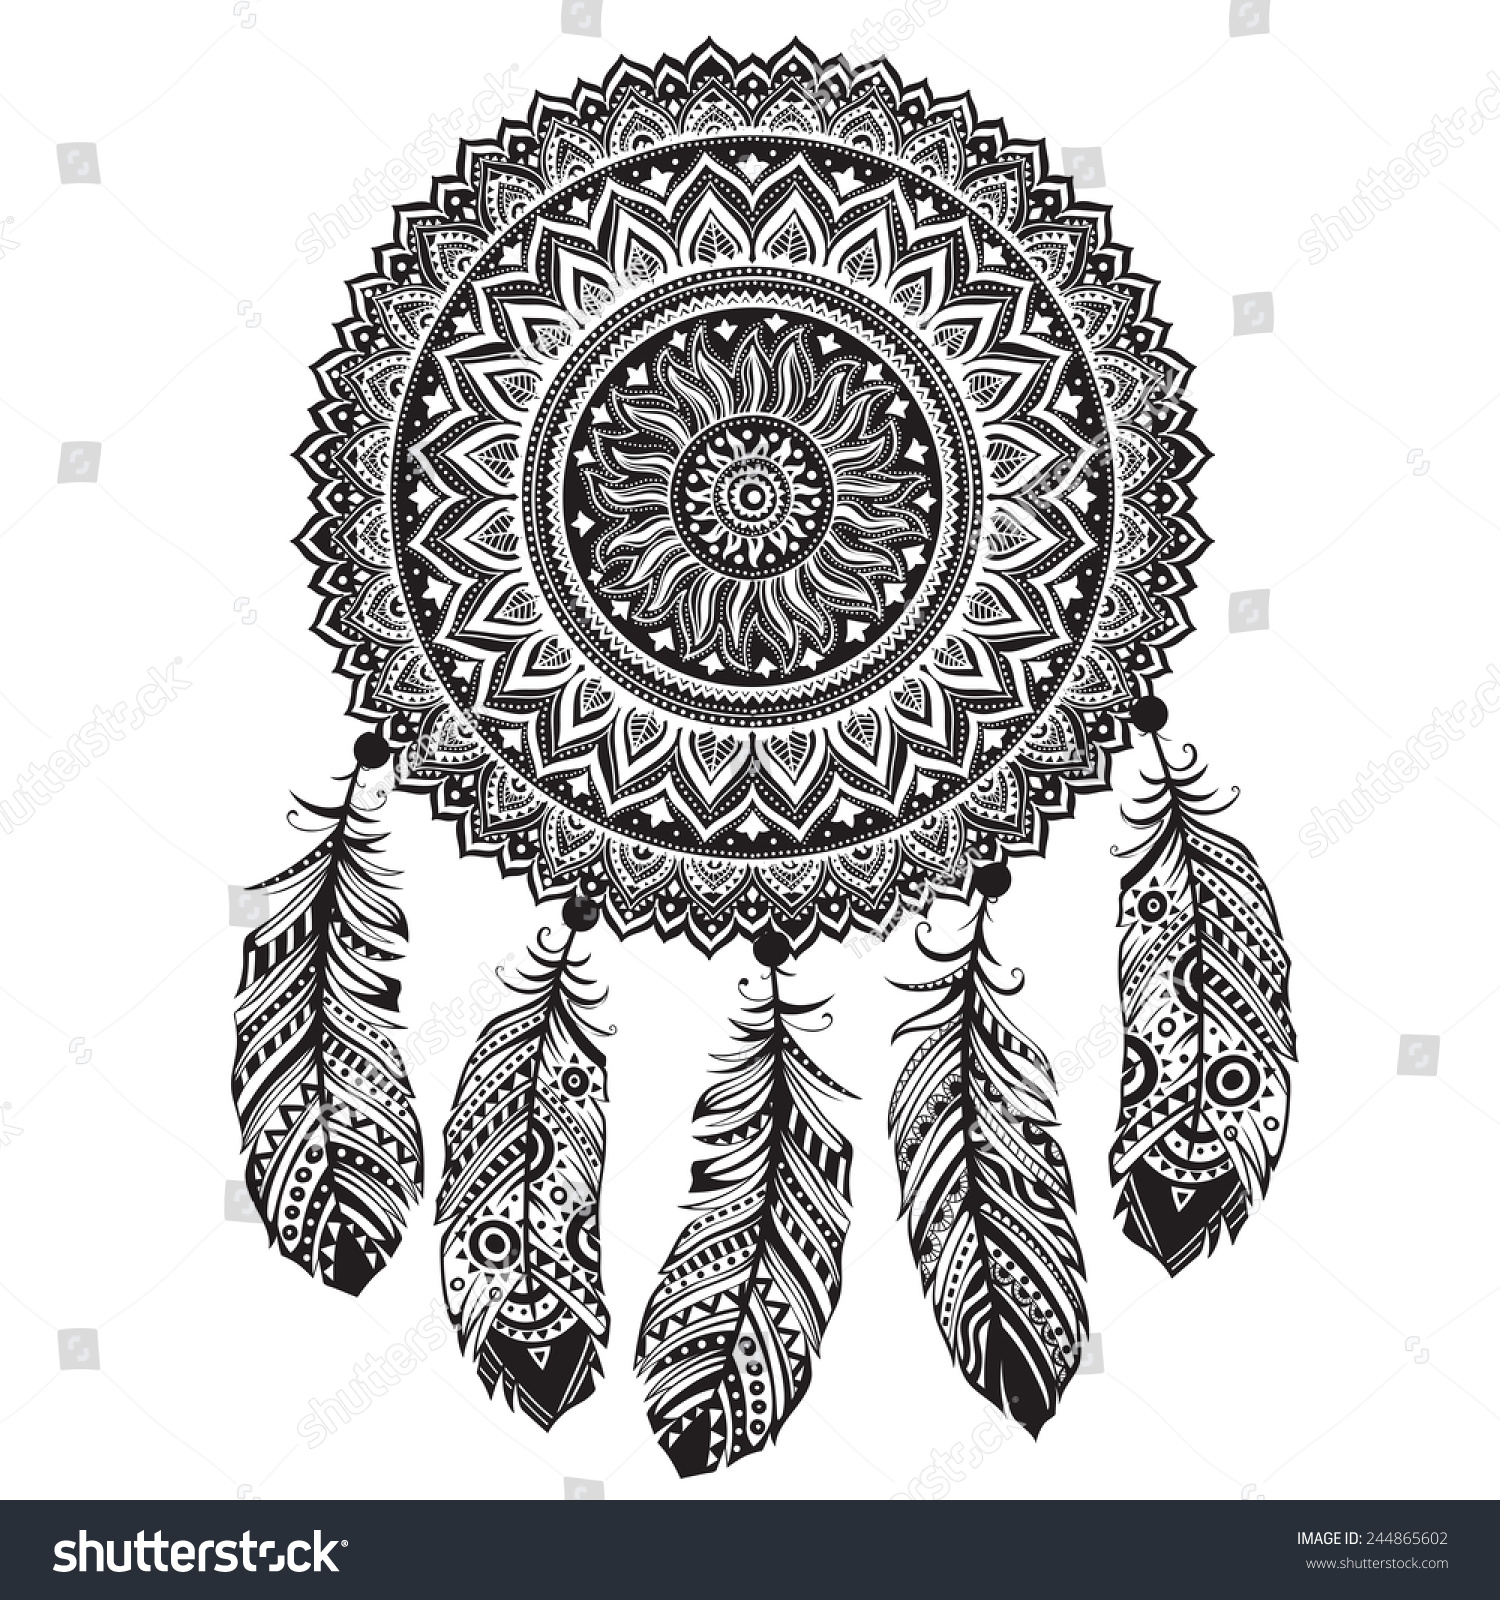 Royalty free ethnic american indian dream catcher 244865602 stock ethnic american indian dream catcher can be used as a greeting card 244865602 m4hsunfo